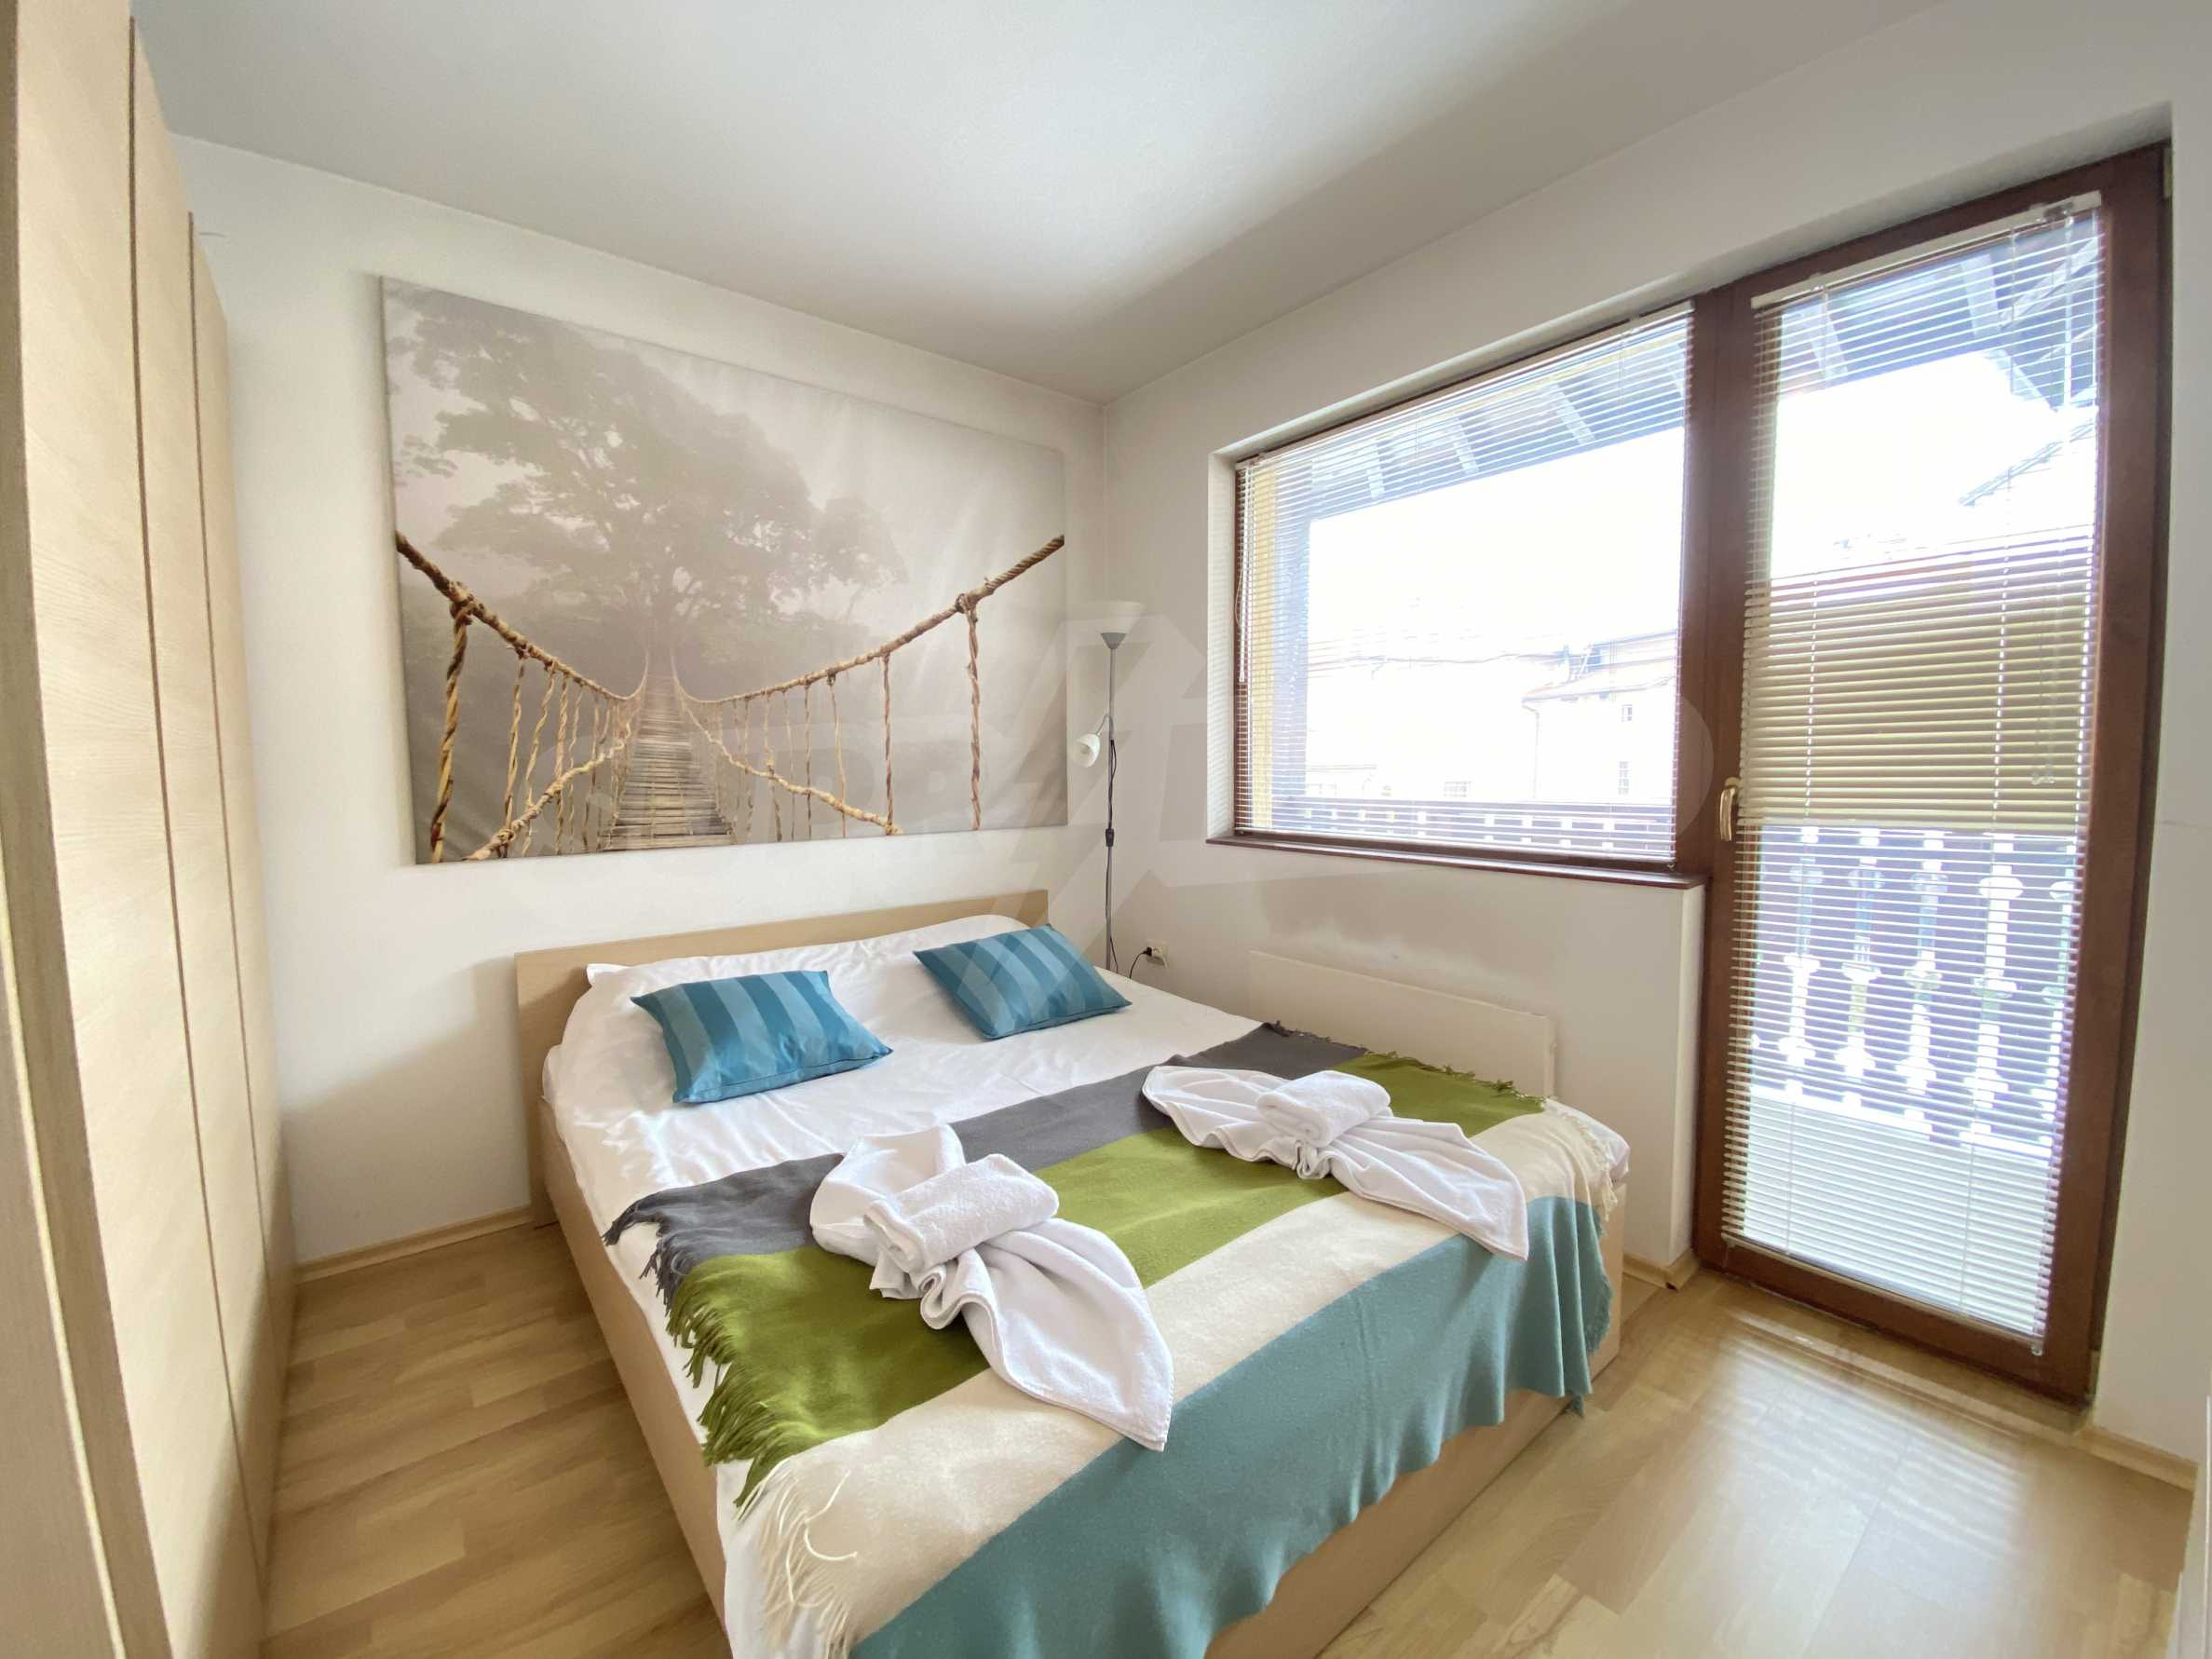 Furnished two-bedroom apartment located in a gated complex, just meters from the ski lift in Bansko 3